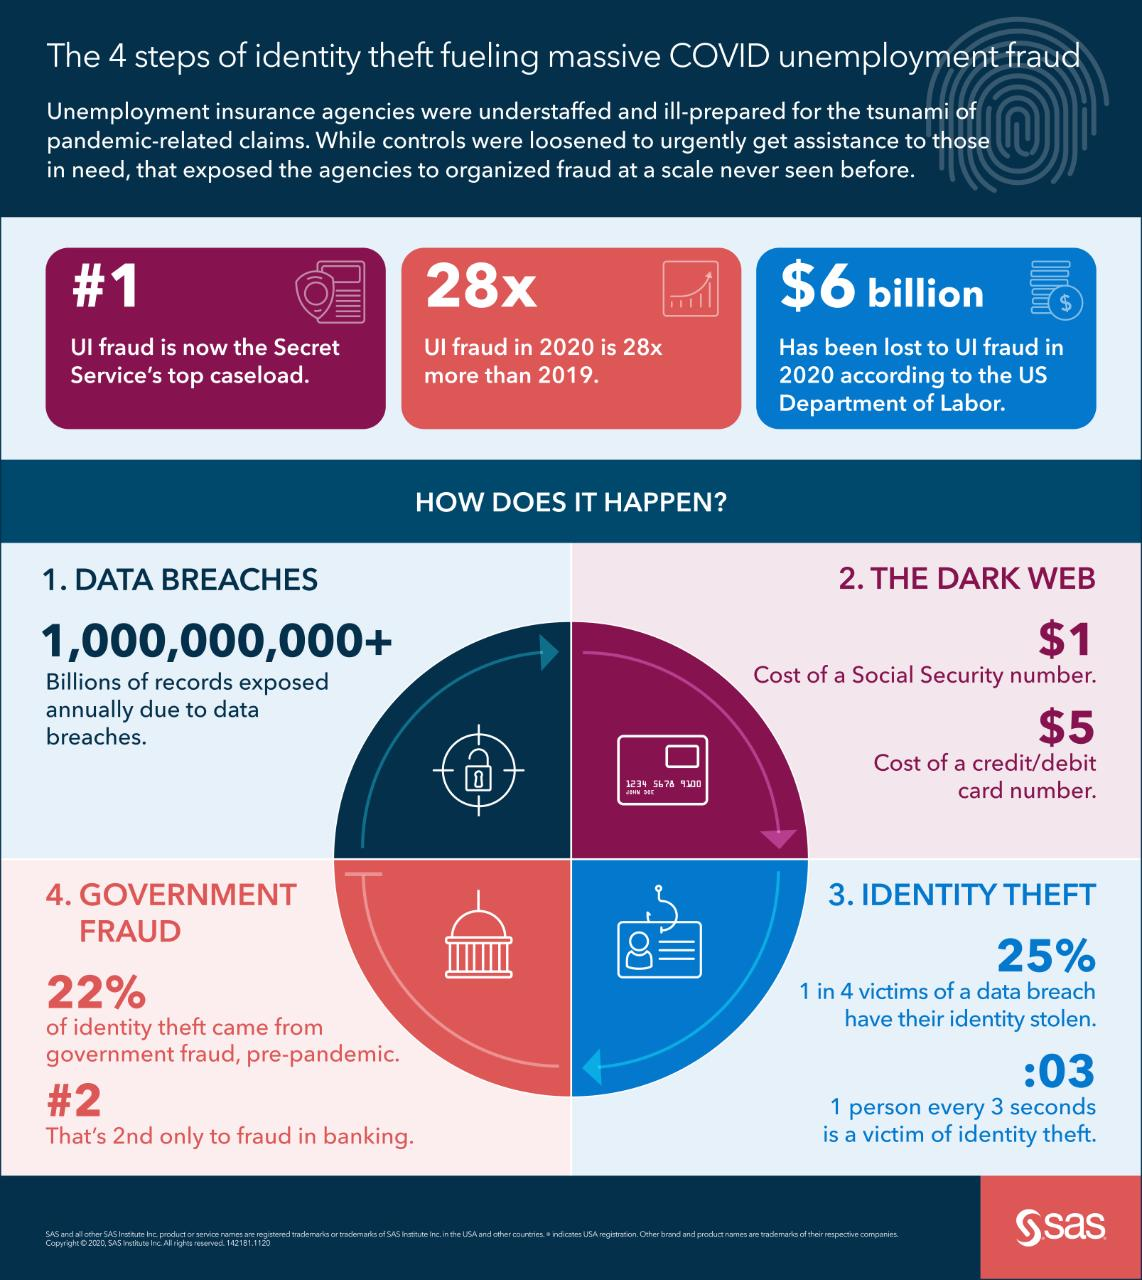 infographic on identity theft fueling unemployment fraud